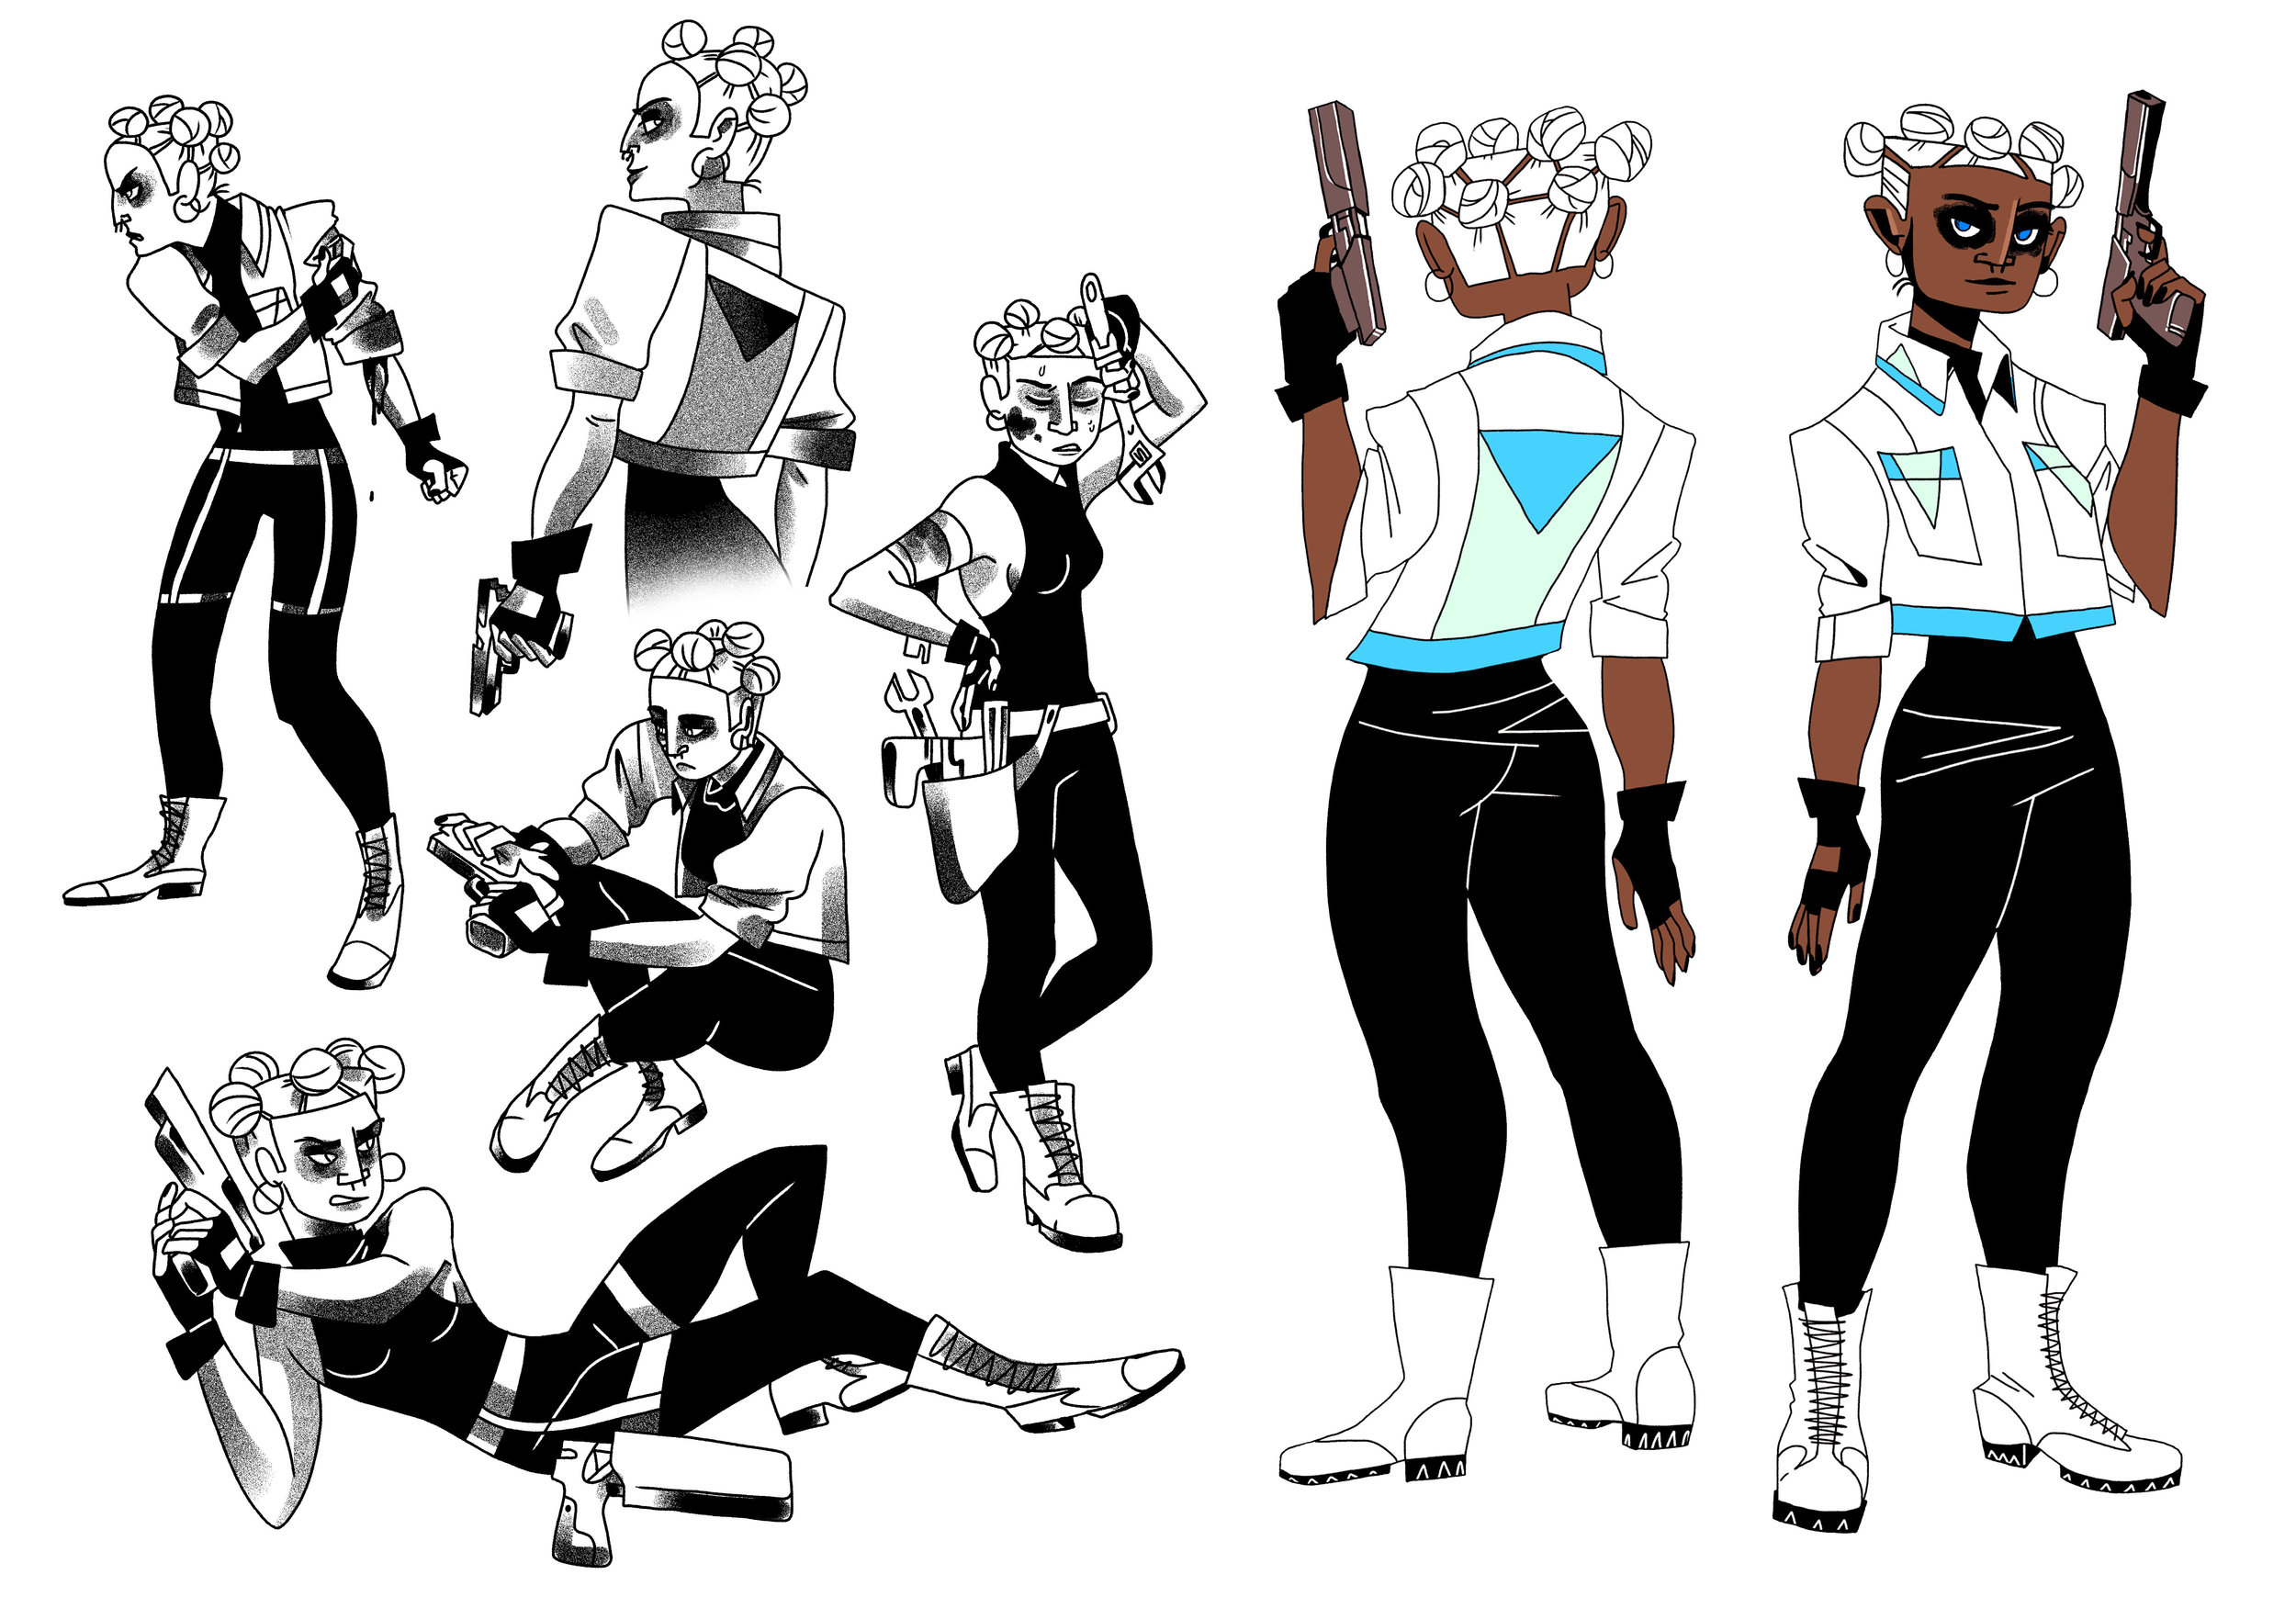 Environmental and character design for my original story, Anthropocene.